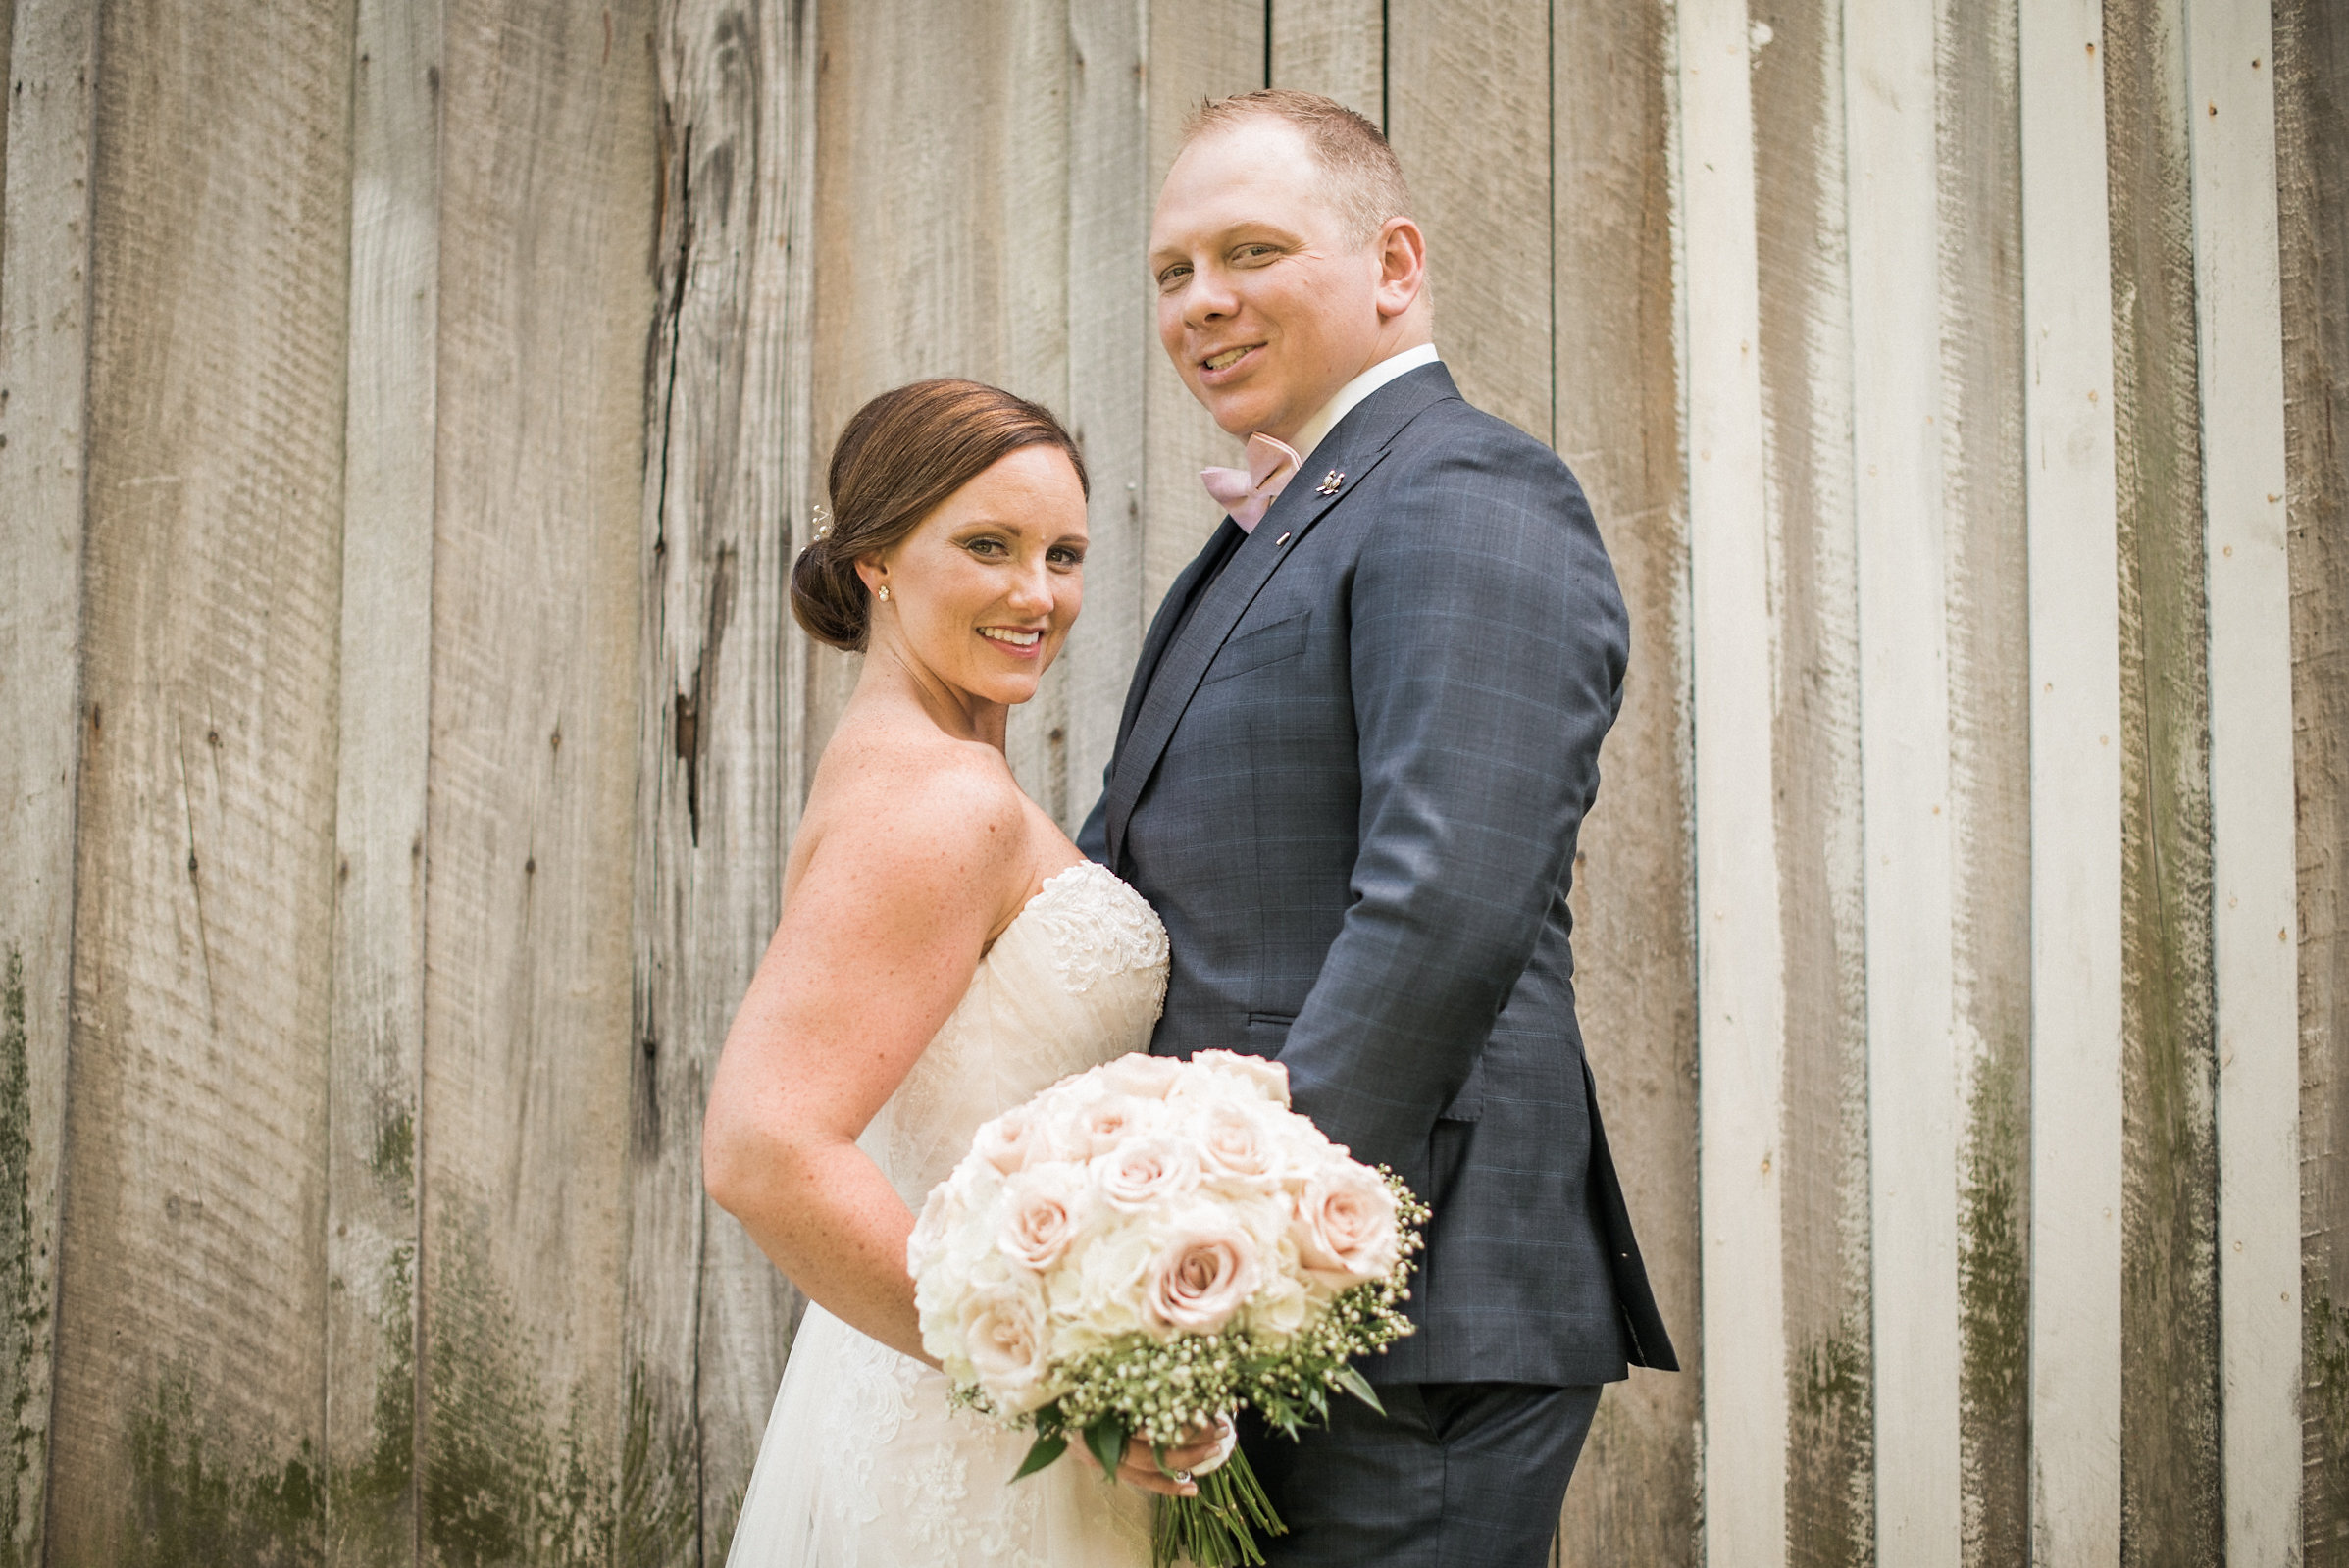 Bride and groom posing in front of barn